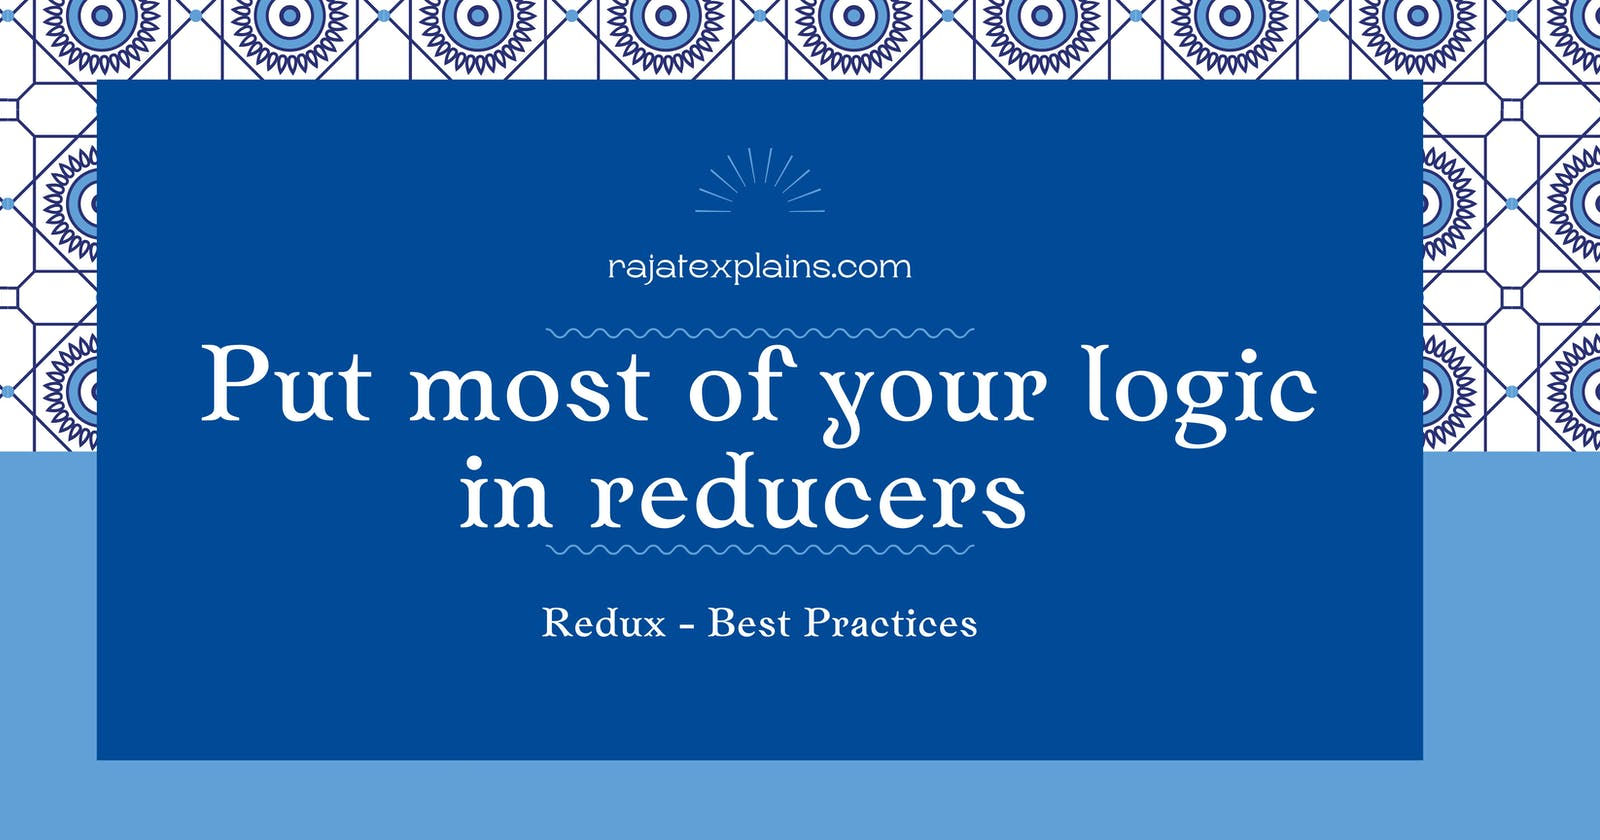 Put most of your logic in reducers